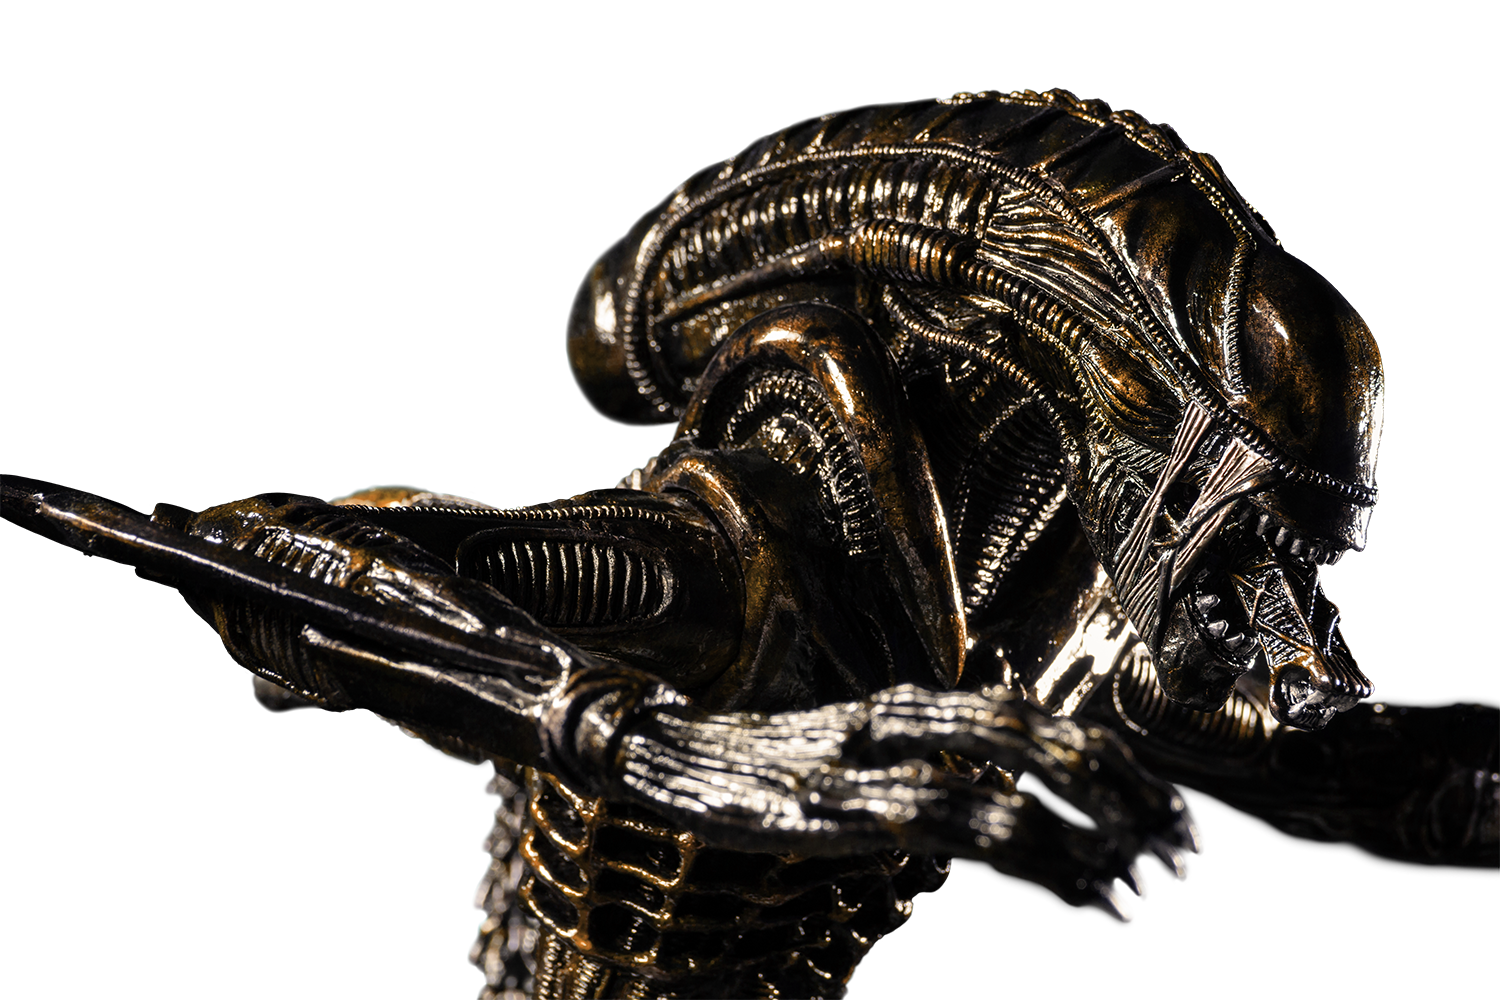 IKO1605-Alien-in-Water-Statue-New-Paint-12-243.png